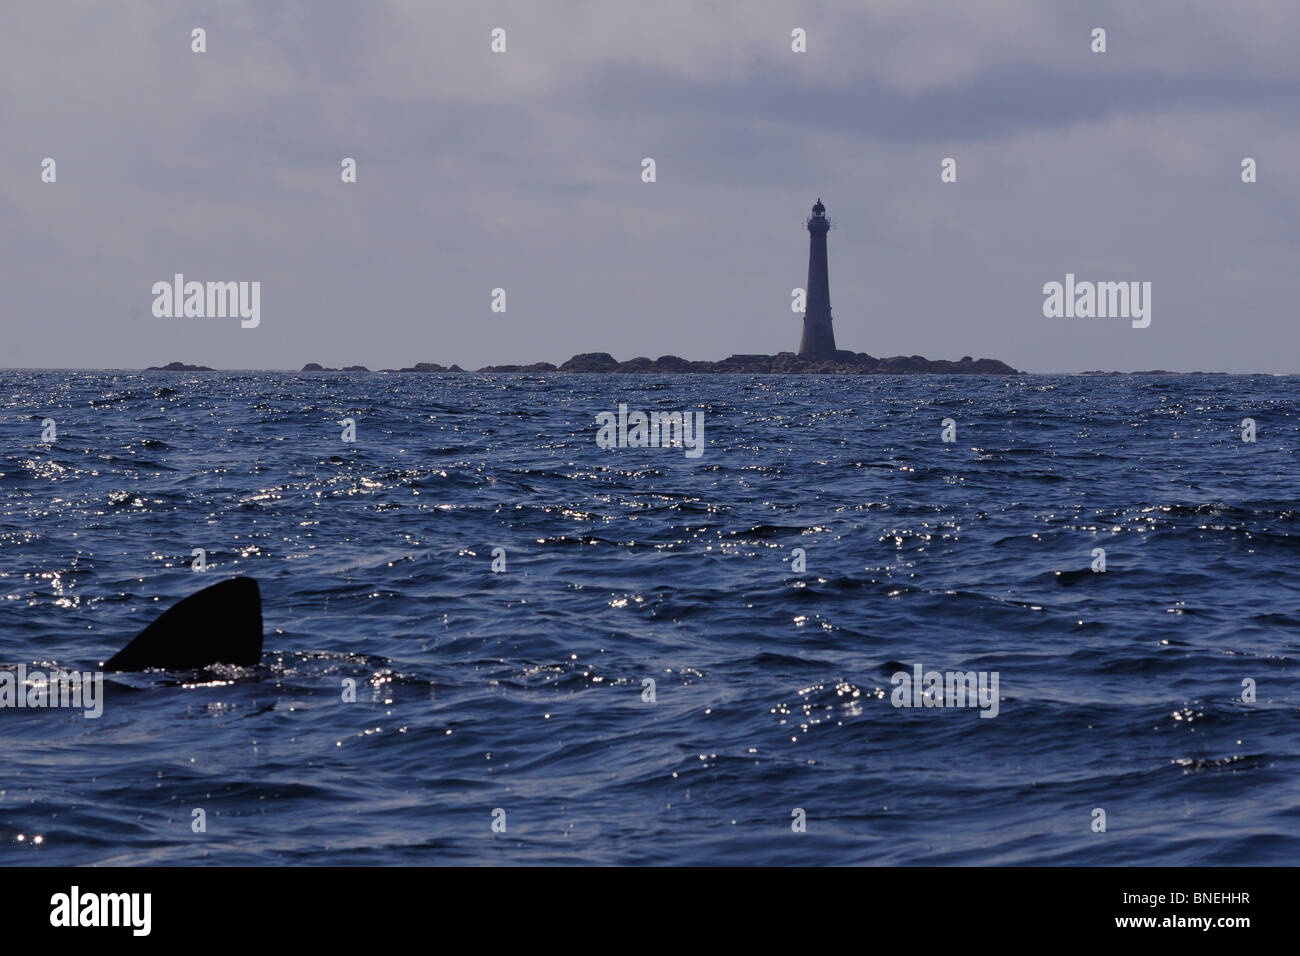 Skerryvore Lighthouse (11 miles SW of Tiree) and basking shark, Atlantic Ocean, Scotland - Stock Image